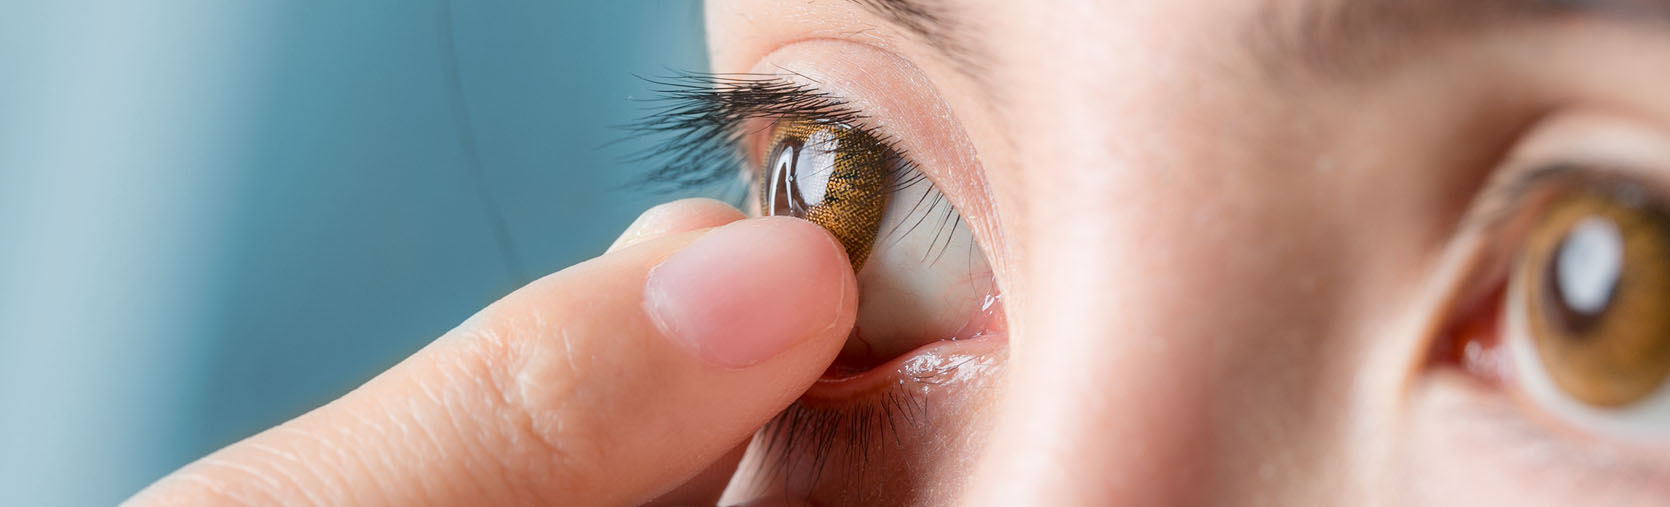 Woman removing a stuck contact lens